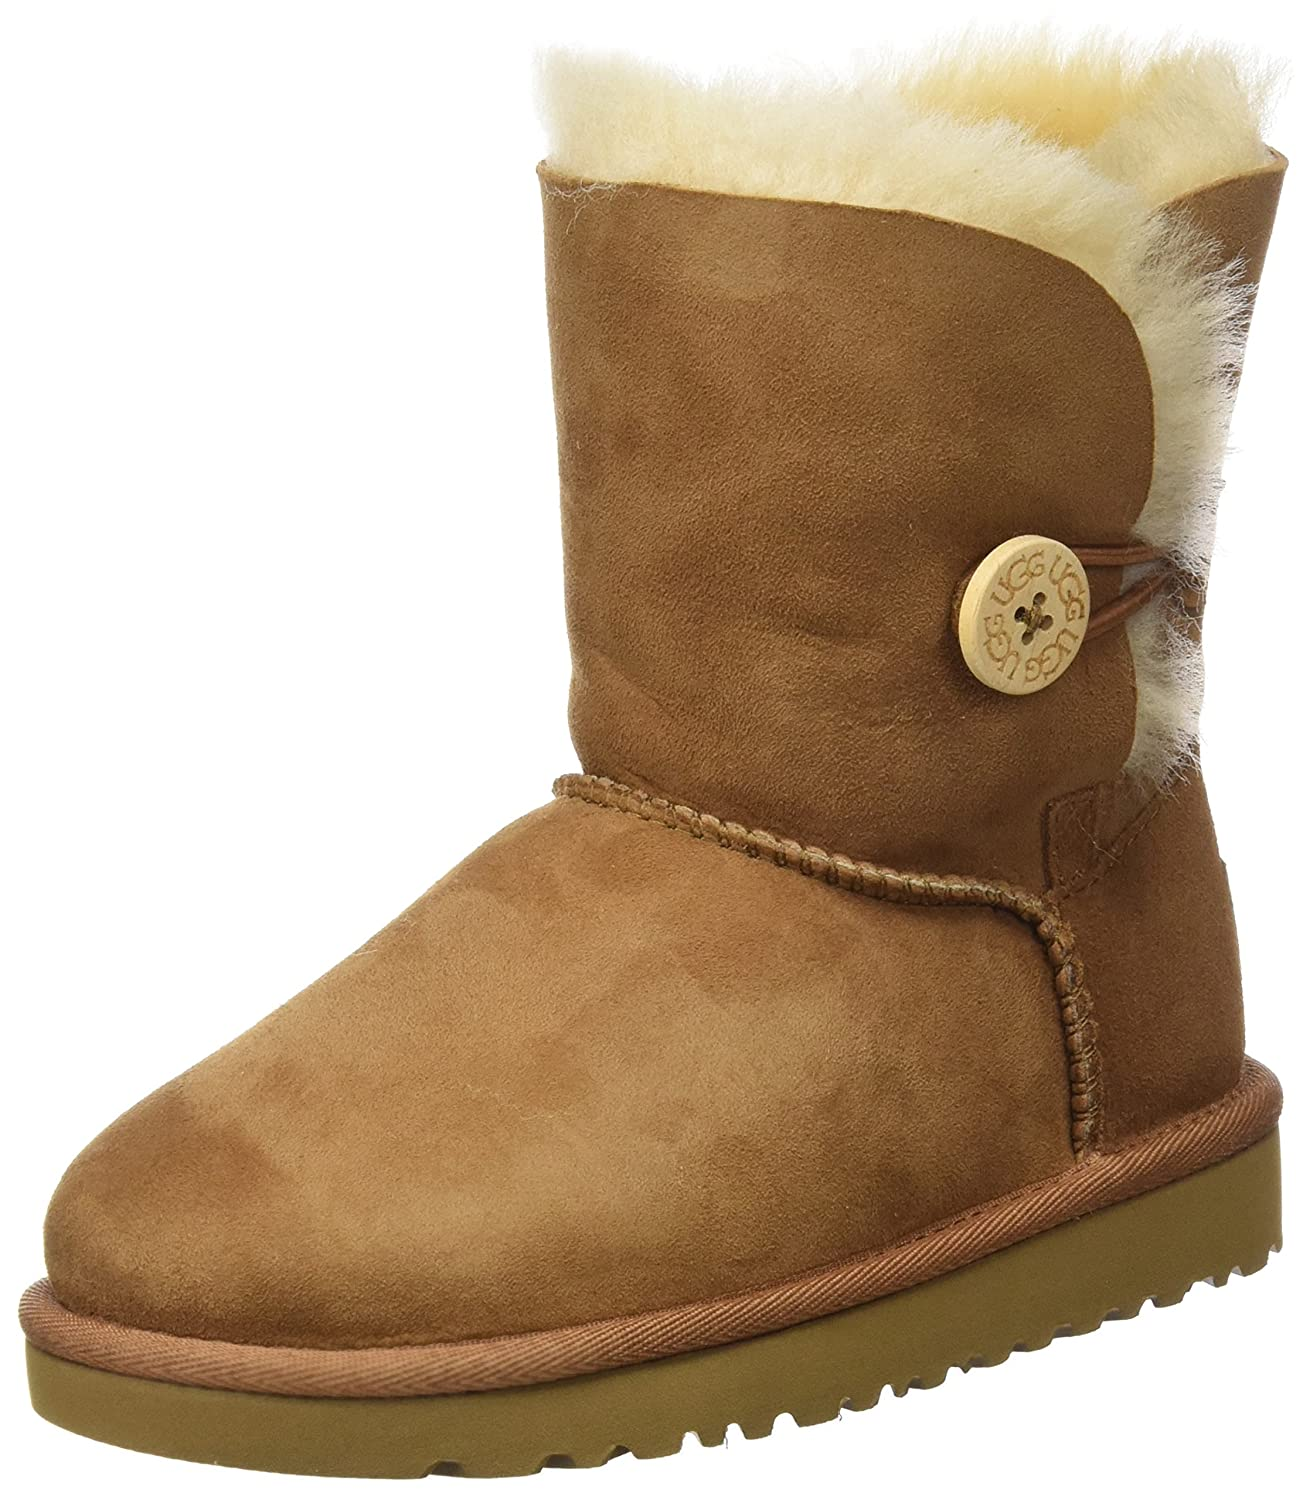 28d2f3f90c0 Ugg Australia Bailey Button Girls' Boots